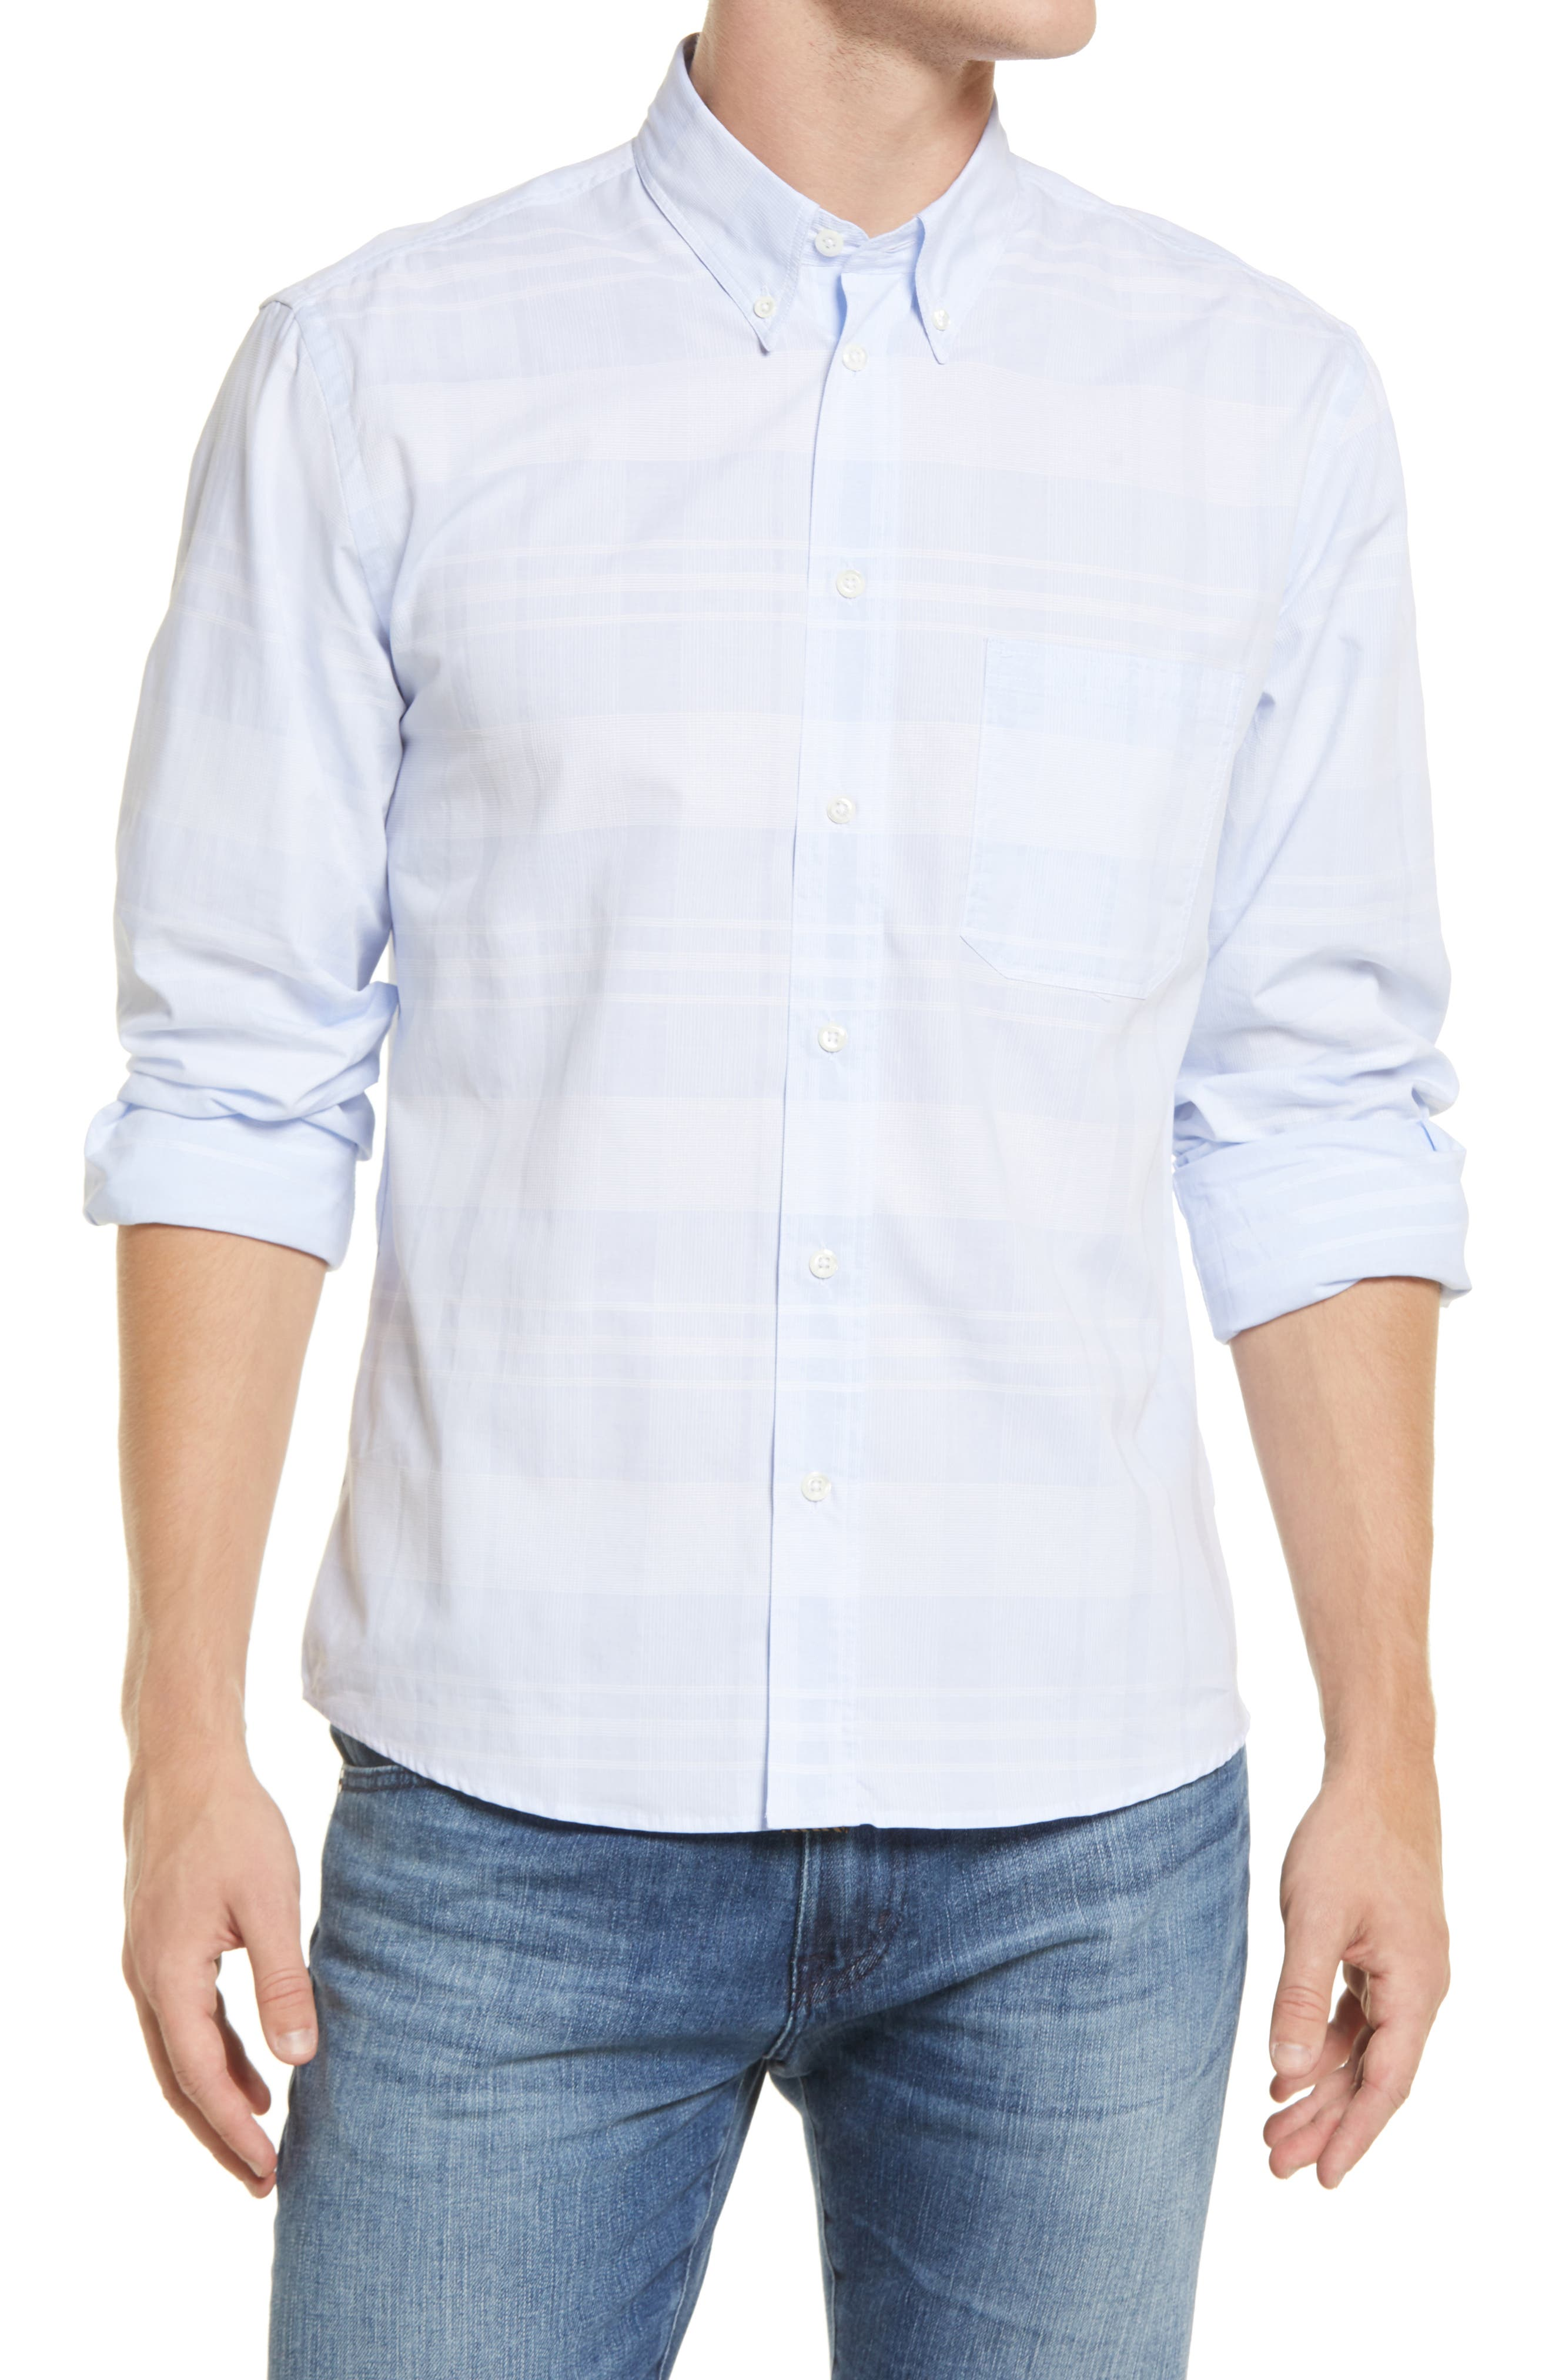 Tuscumbia Standard Fit Button-Down Shirt